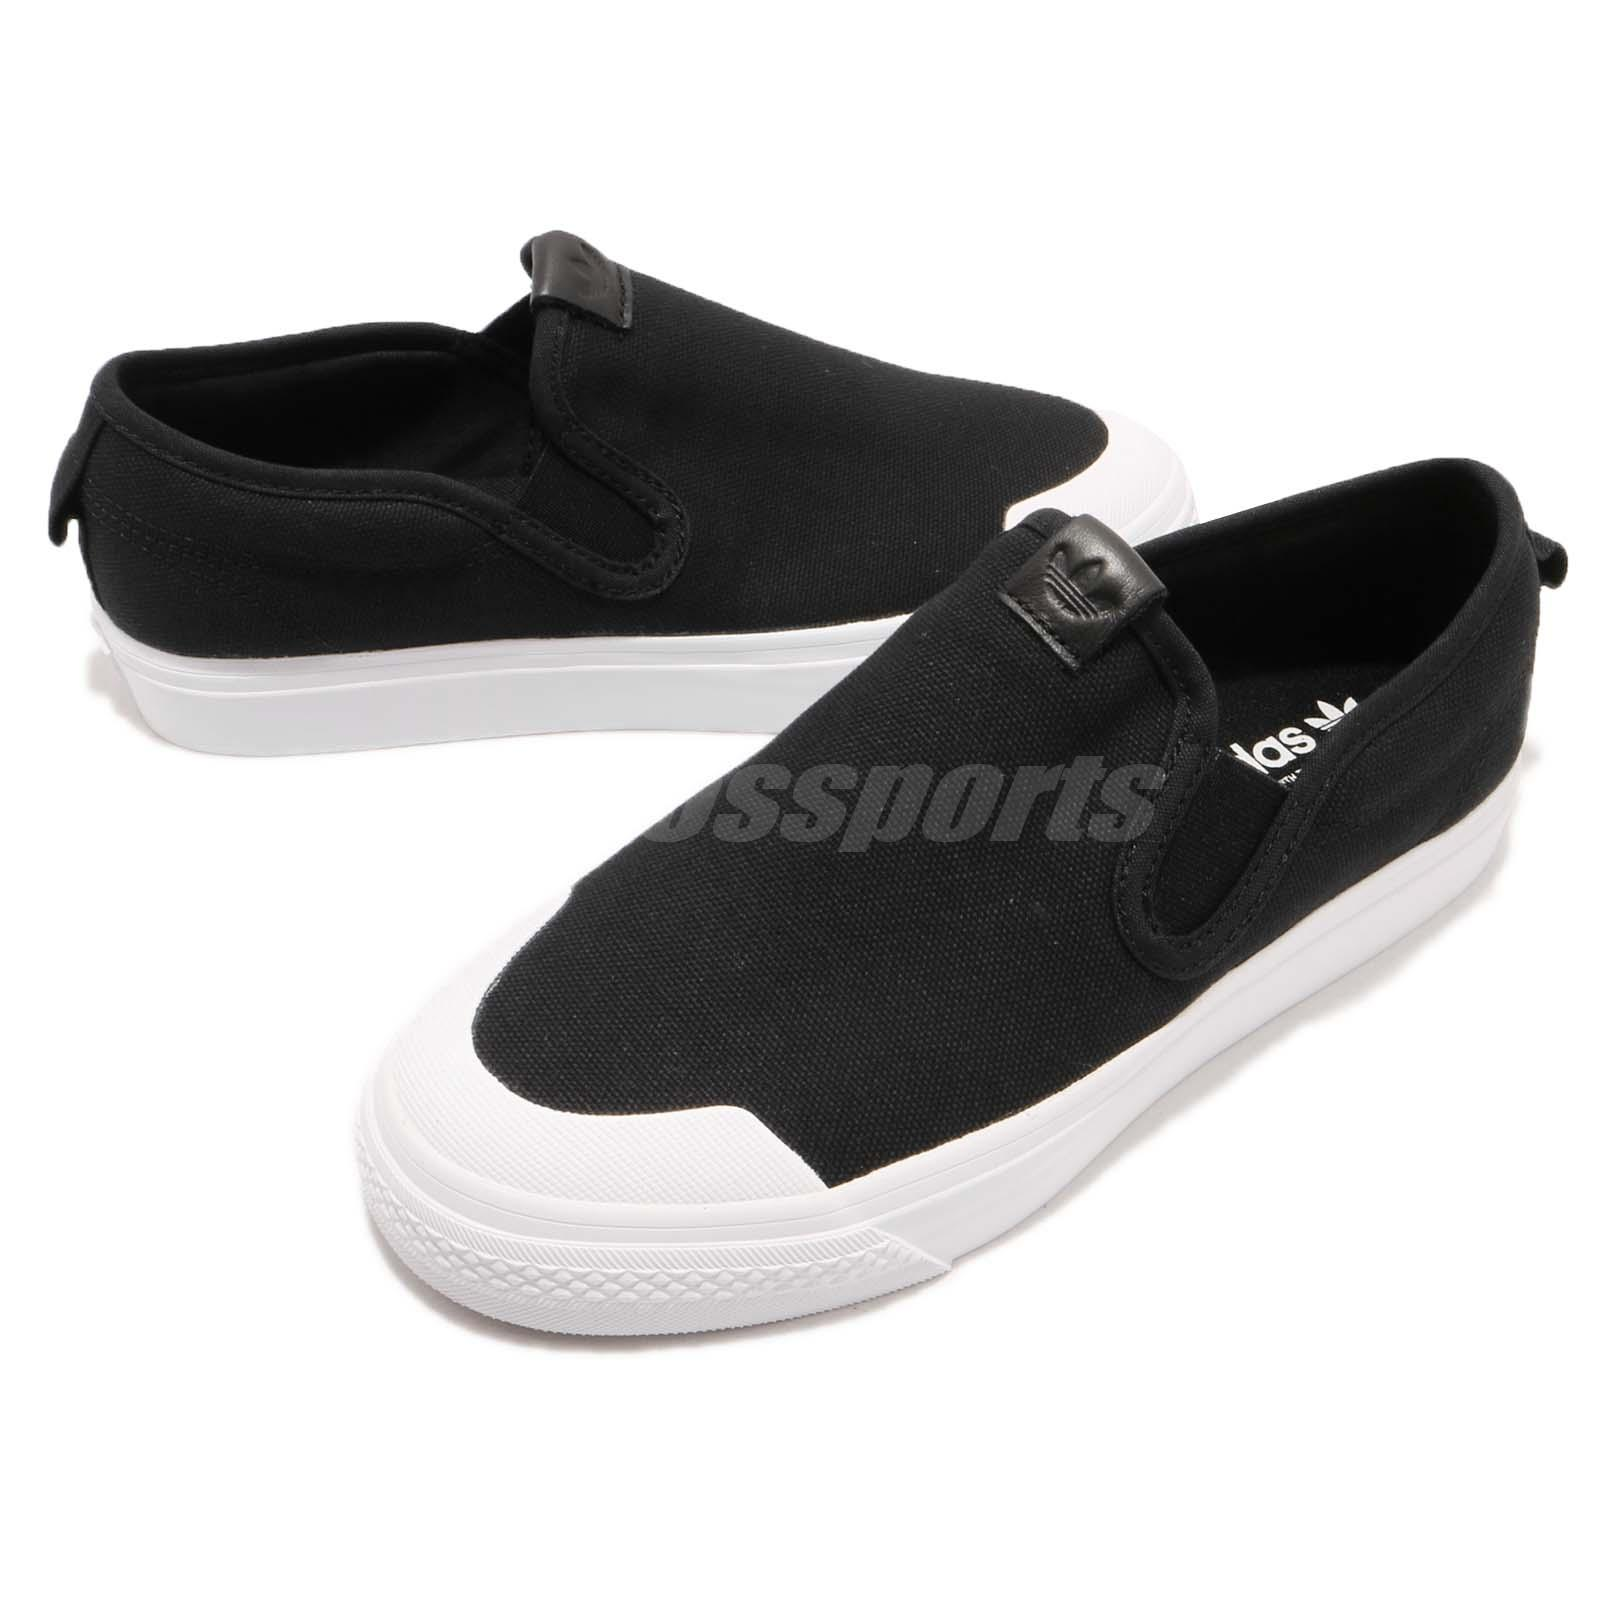 Details about adidas Originals Nizza Slipon W Black White Women Slip On  Casual Shoes CQ3104 05e68c31256ca